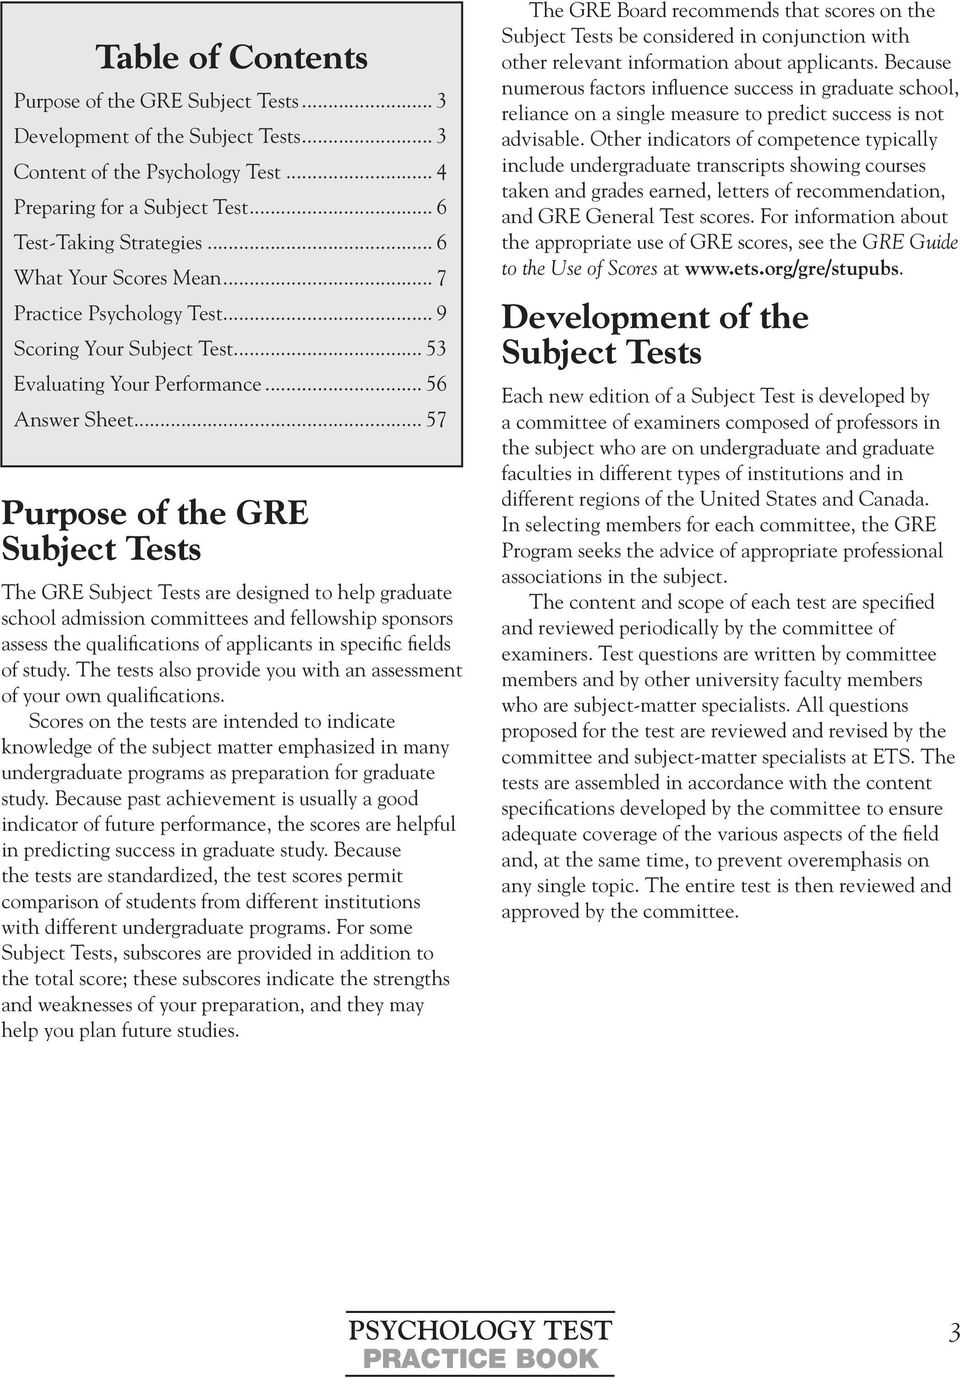 .. 57 Purpose of the GRE Subject Tests The GRE Subject Tests are designed to help graduate school admission committees and fellowship sponsors assess the qualifications of applicants in specific